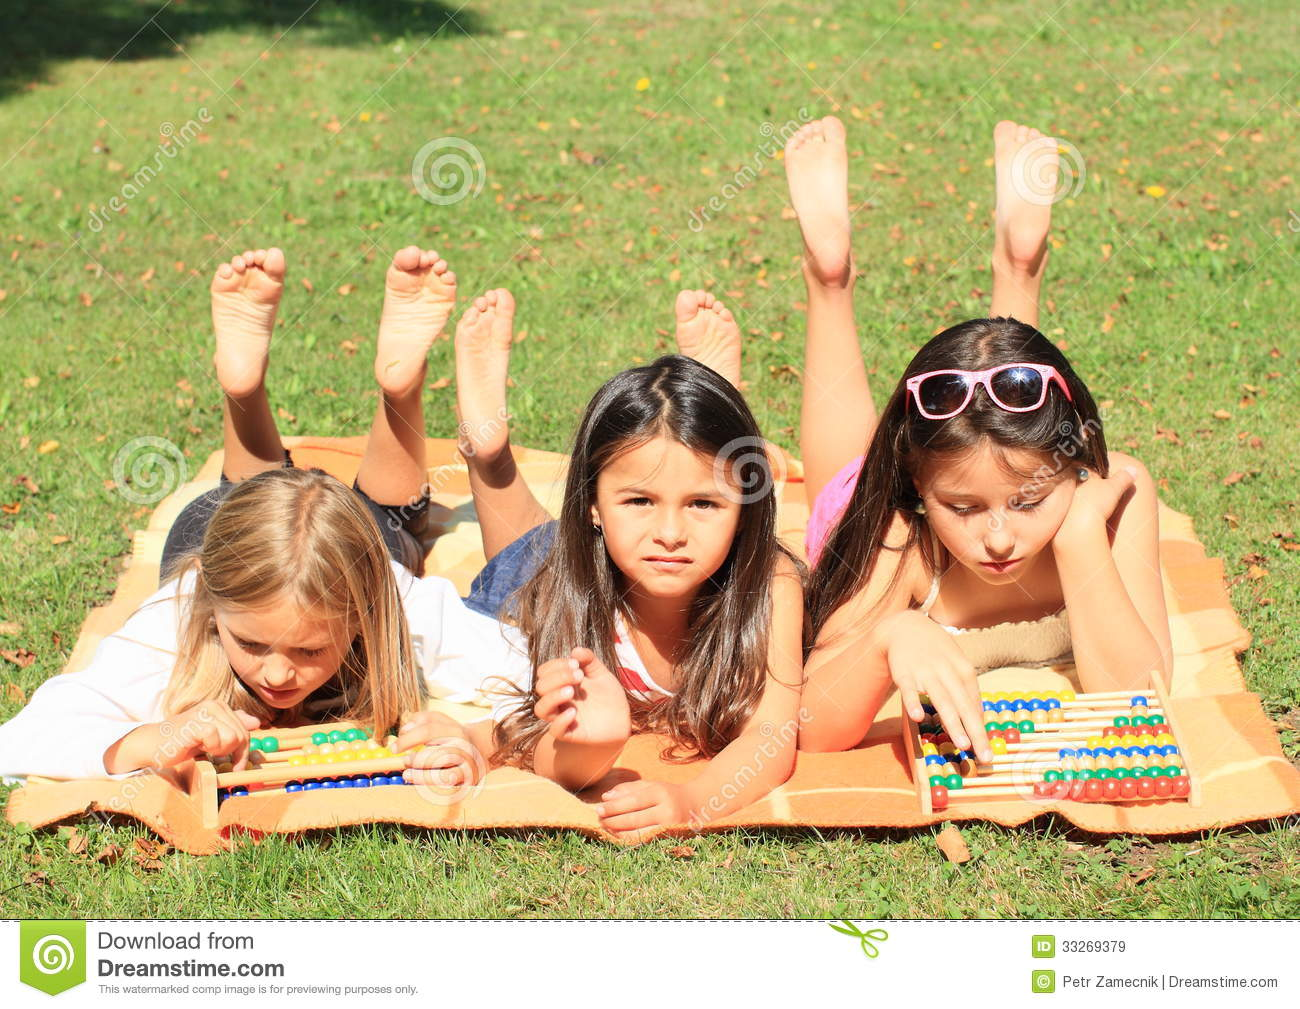 https://thumbs.dreamstime.com/z/girls-abacuses-three-lying-little-barefoot-girl-playing-two-colorful-33269379.jpg